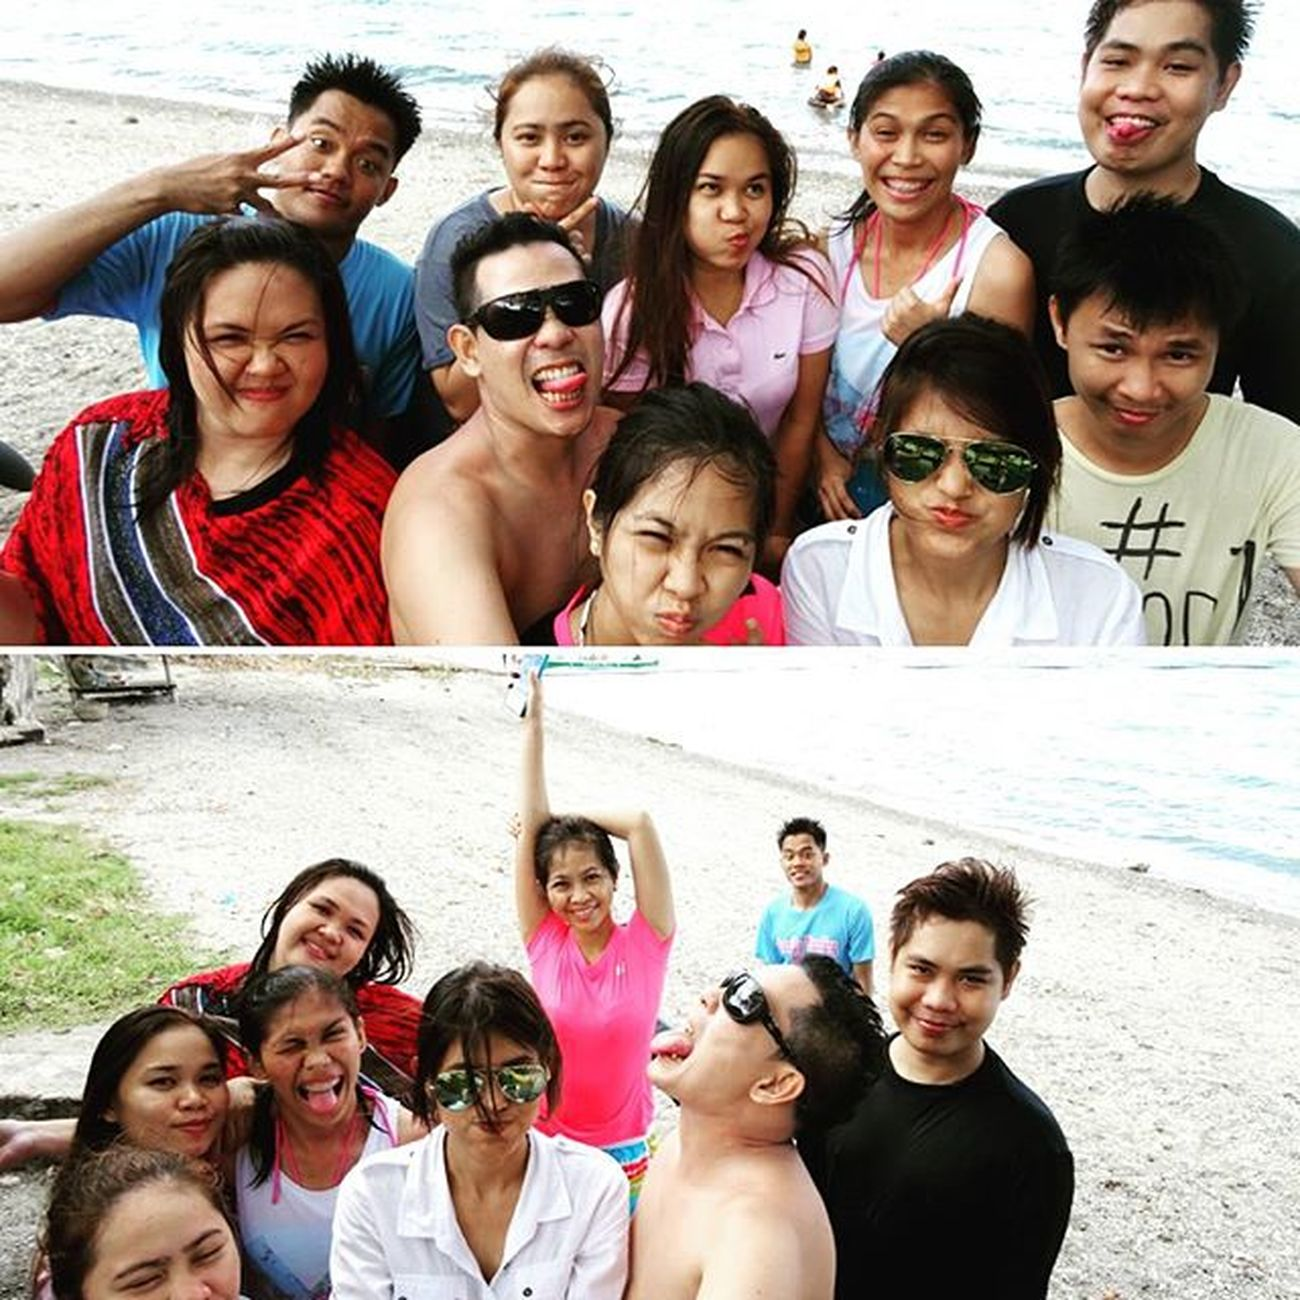 The Peskies Baywatch. November182015 PlainHappiness Escapade Peskiesonthego